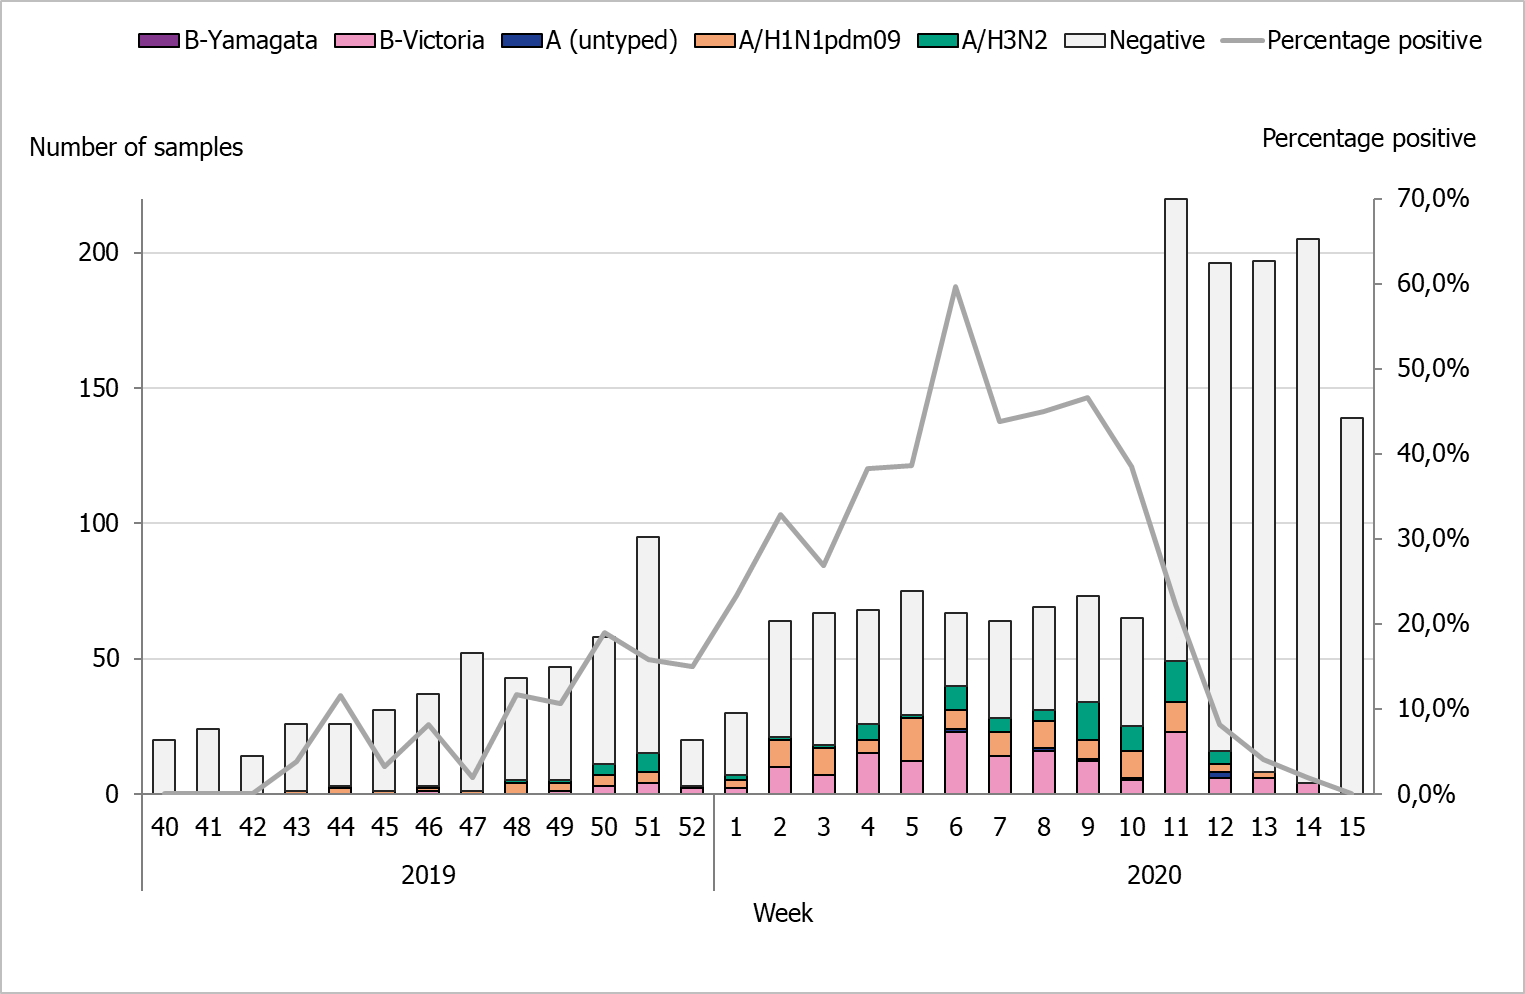 Bar graph showing the number of sentinel samples submitted each week, number of samples by subtype/lineage, and the percentage positive as a line.